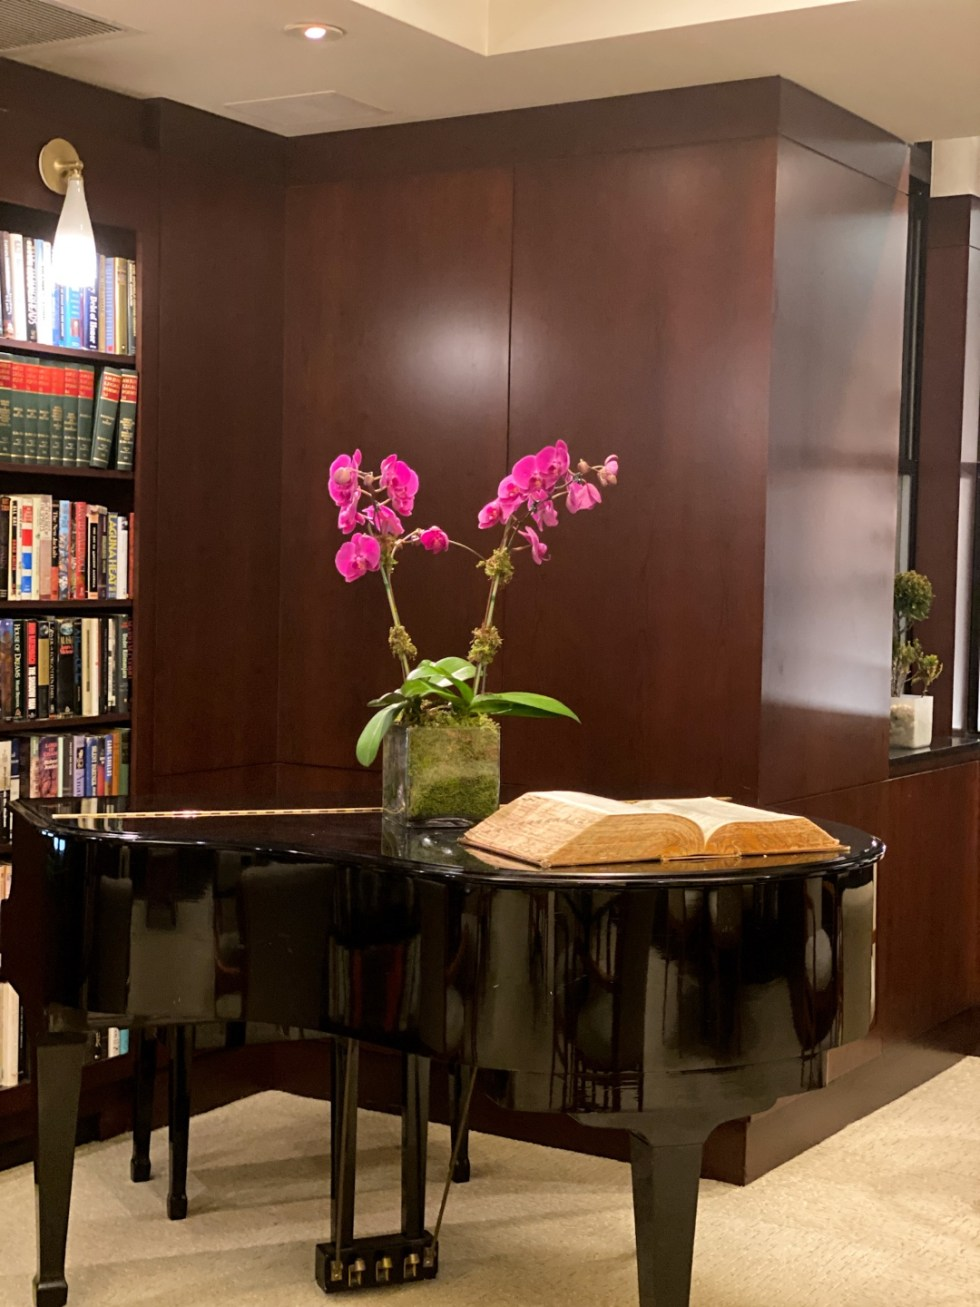 NYC Summer Weekend: Things to Do in NYC in the Summer - I'm Fixin' To - @imfixintoblog   NYC Summer Weekend by popular NC travel blog, I'm Fixin' To: image of a black baby grand piano with some pink orchids resting on top in a clear glass vase.